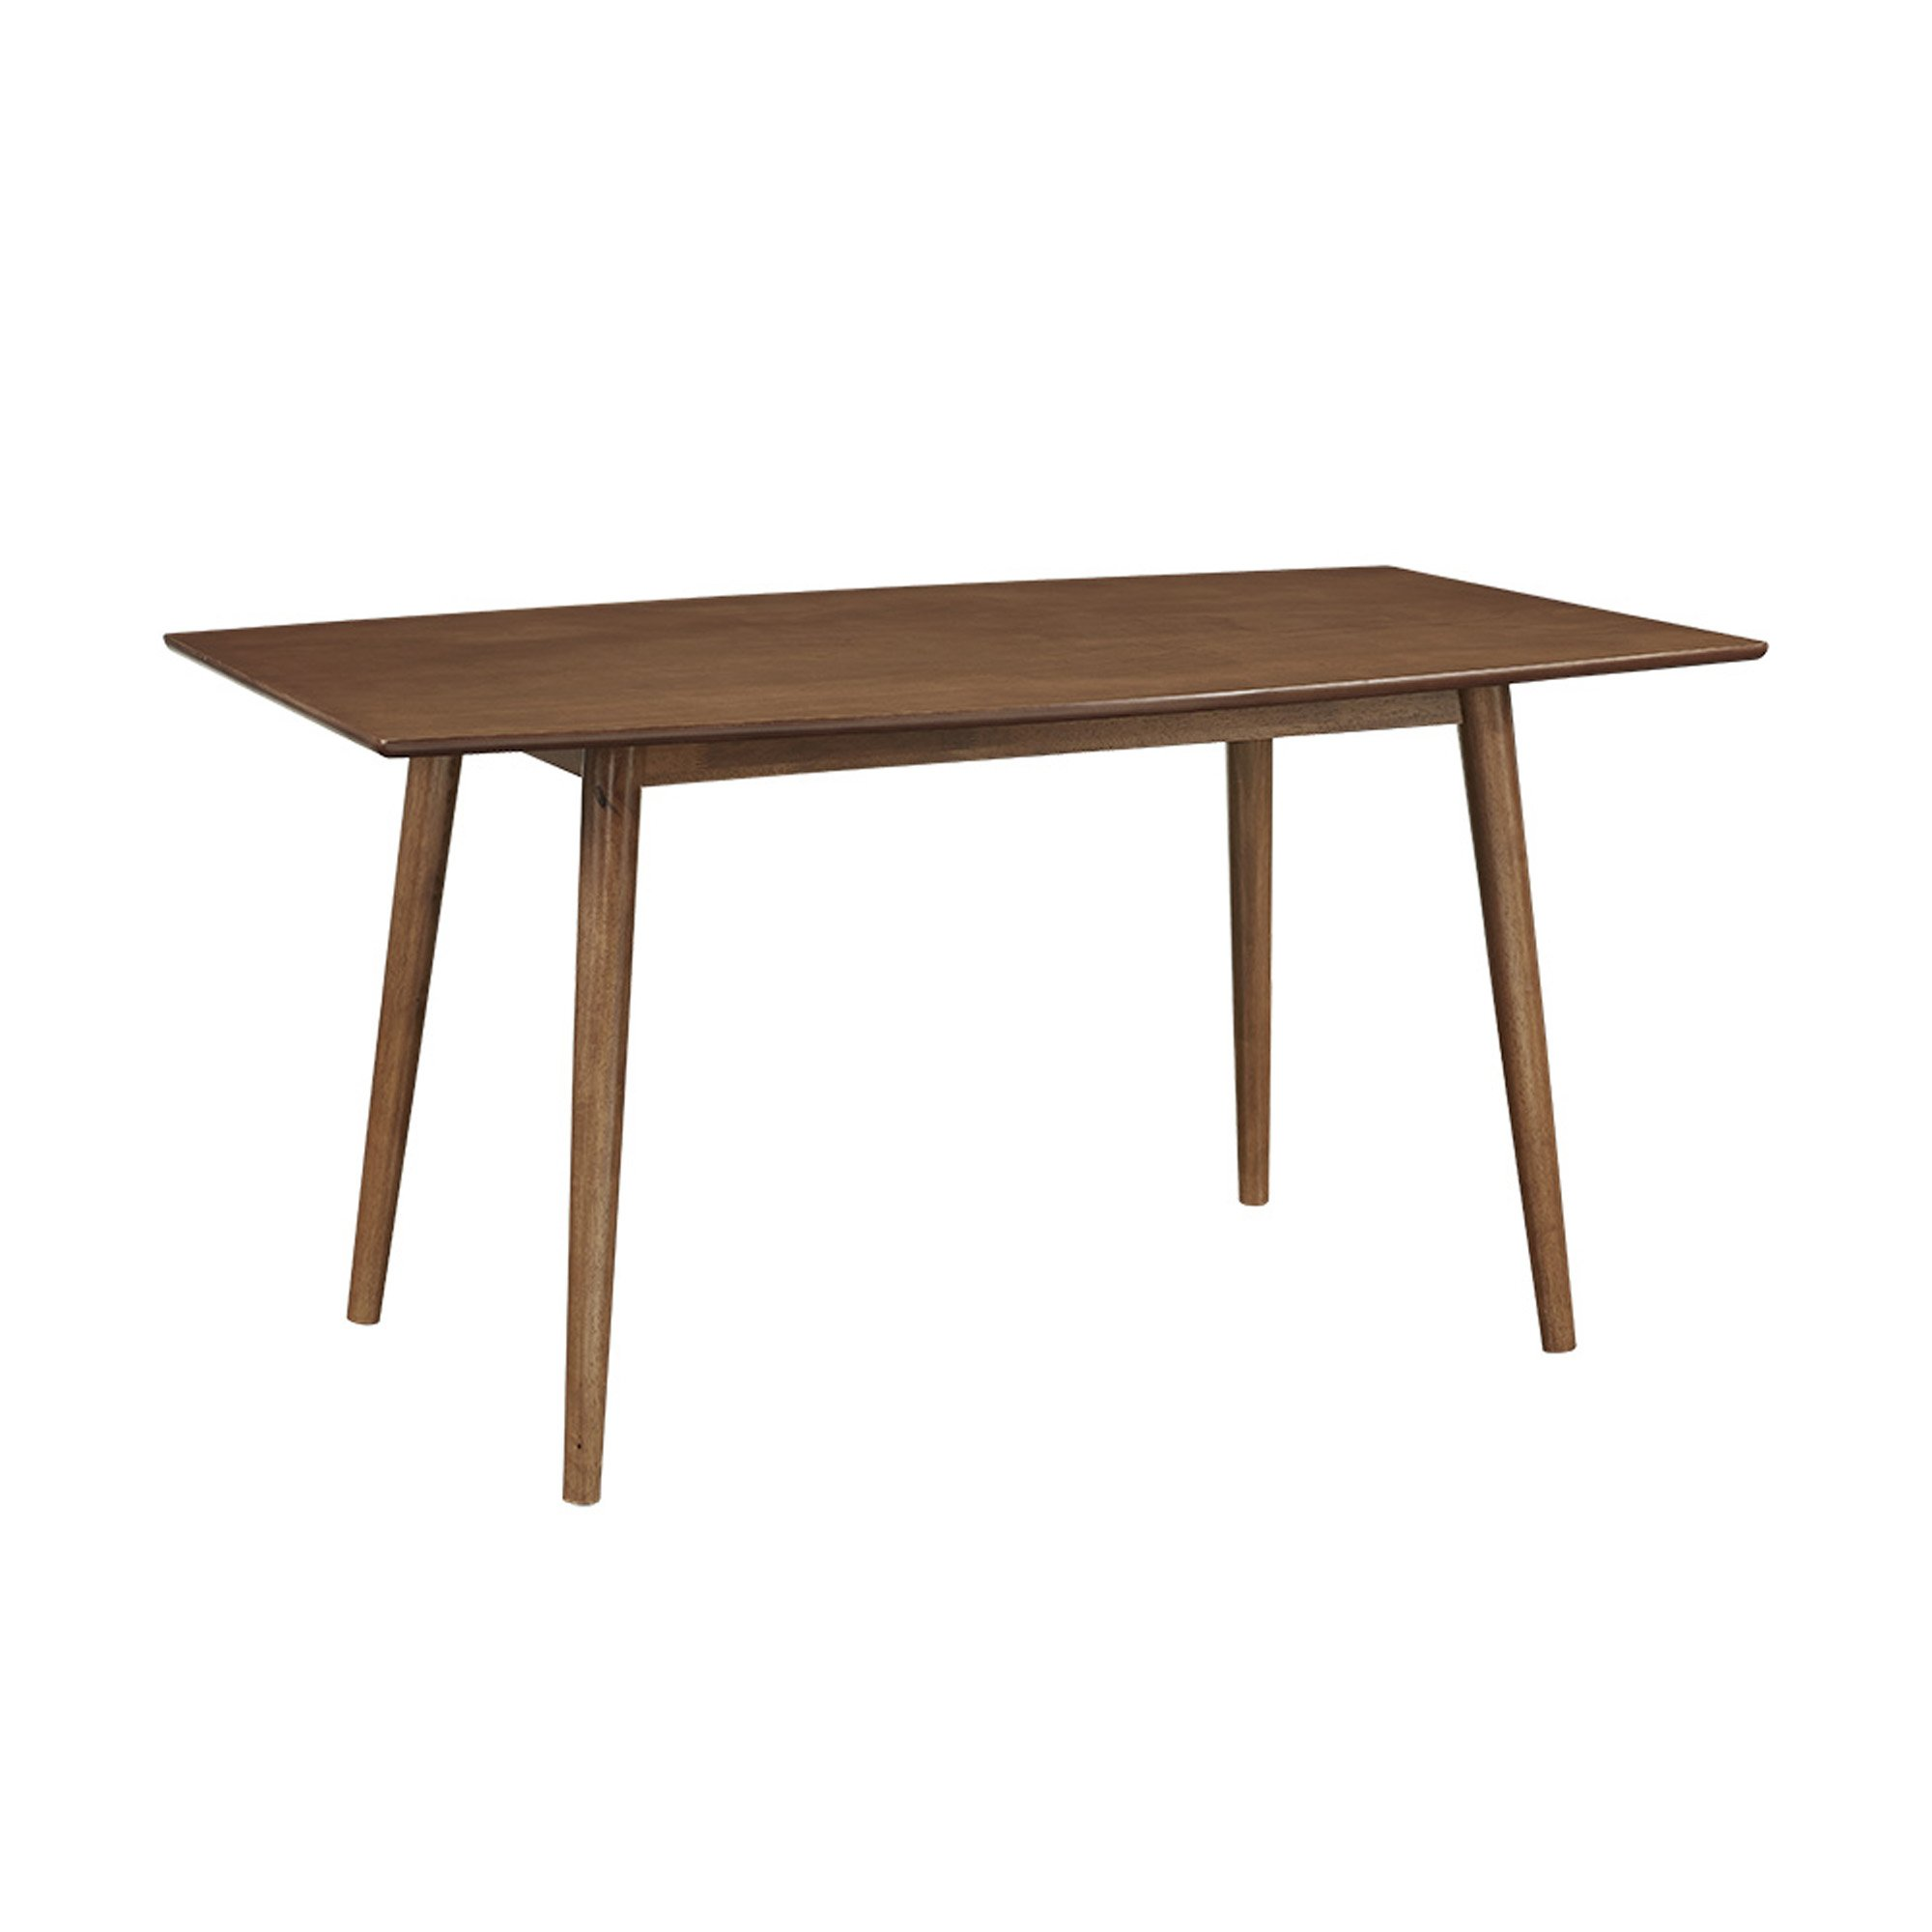 WE Furniture 60'' Mid-Century Wood Dining Table - Acorn by WE Furniture